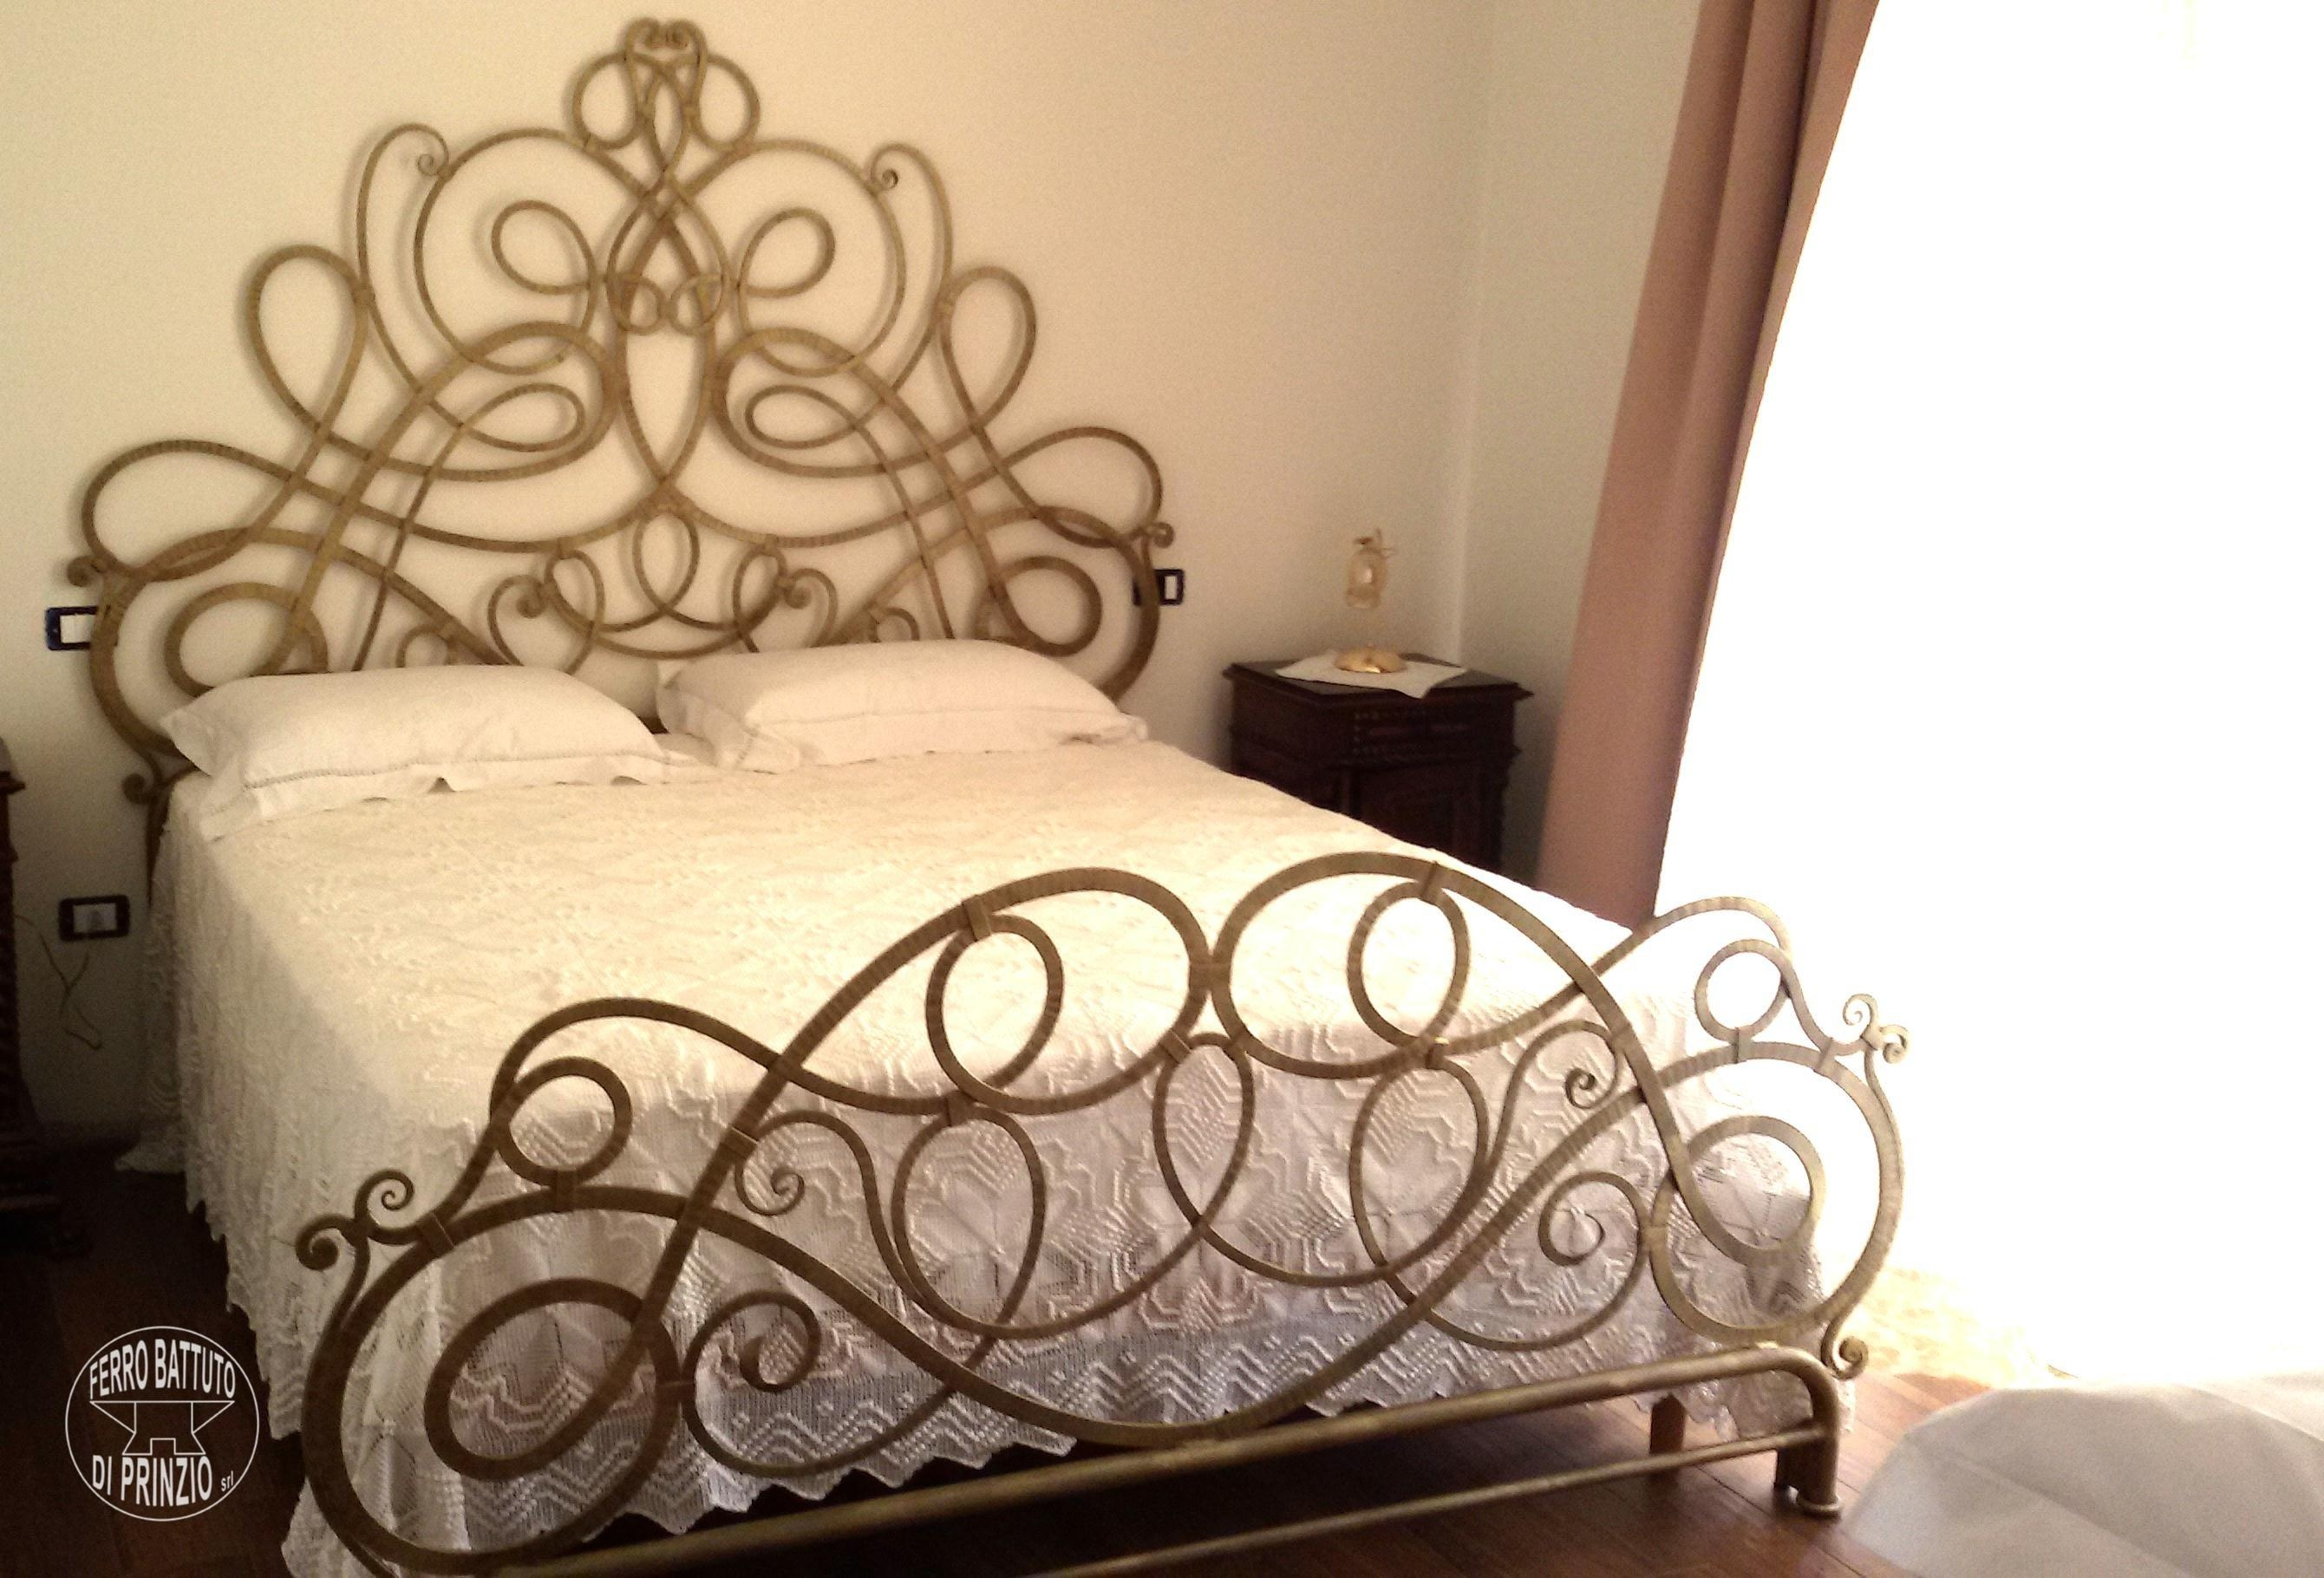 Bedroom : Metal Wall Plaques Metal Wall Art Decor Iron Wall Decor With Large Wrought Iron Wall Art (View 9 of 20)